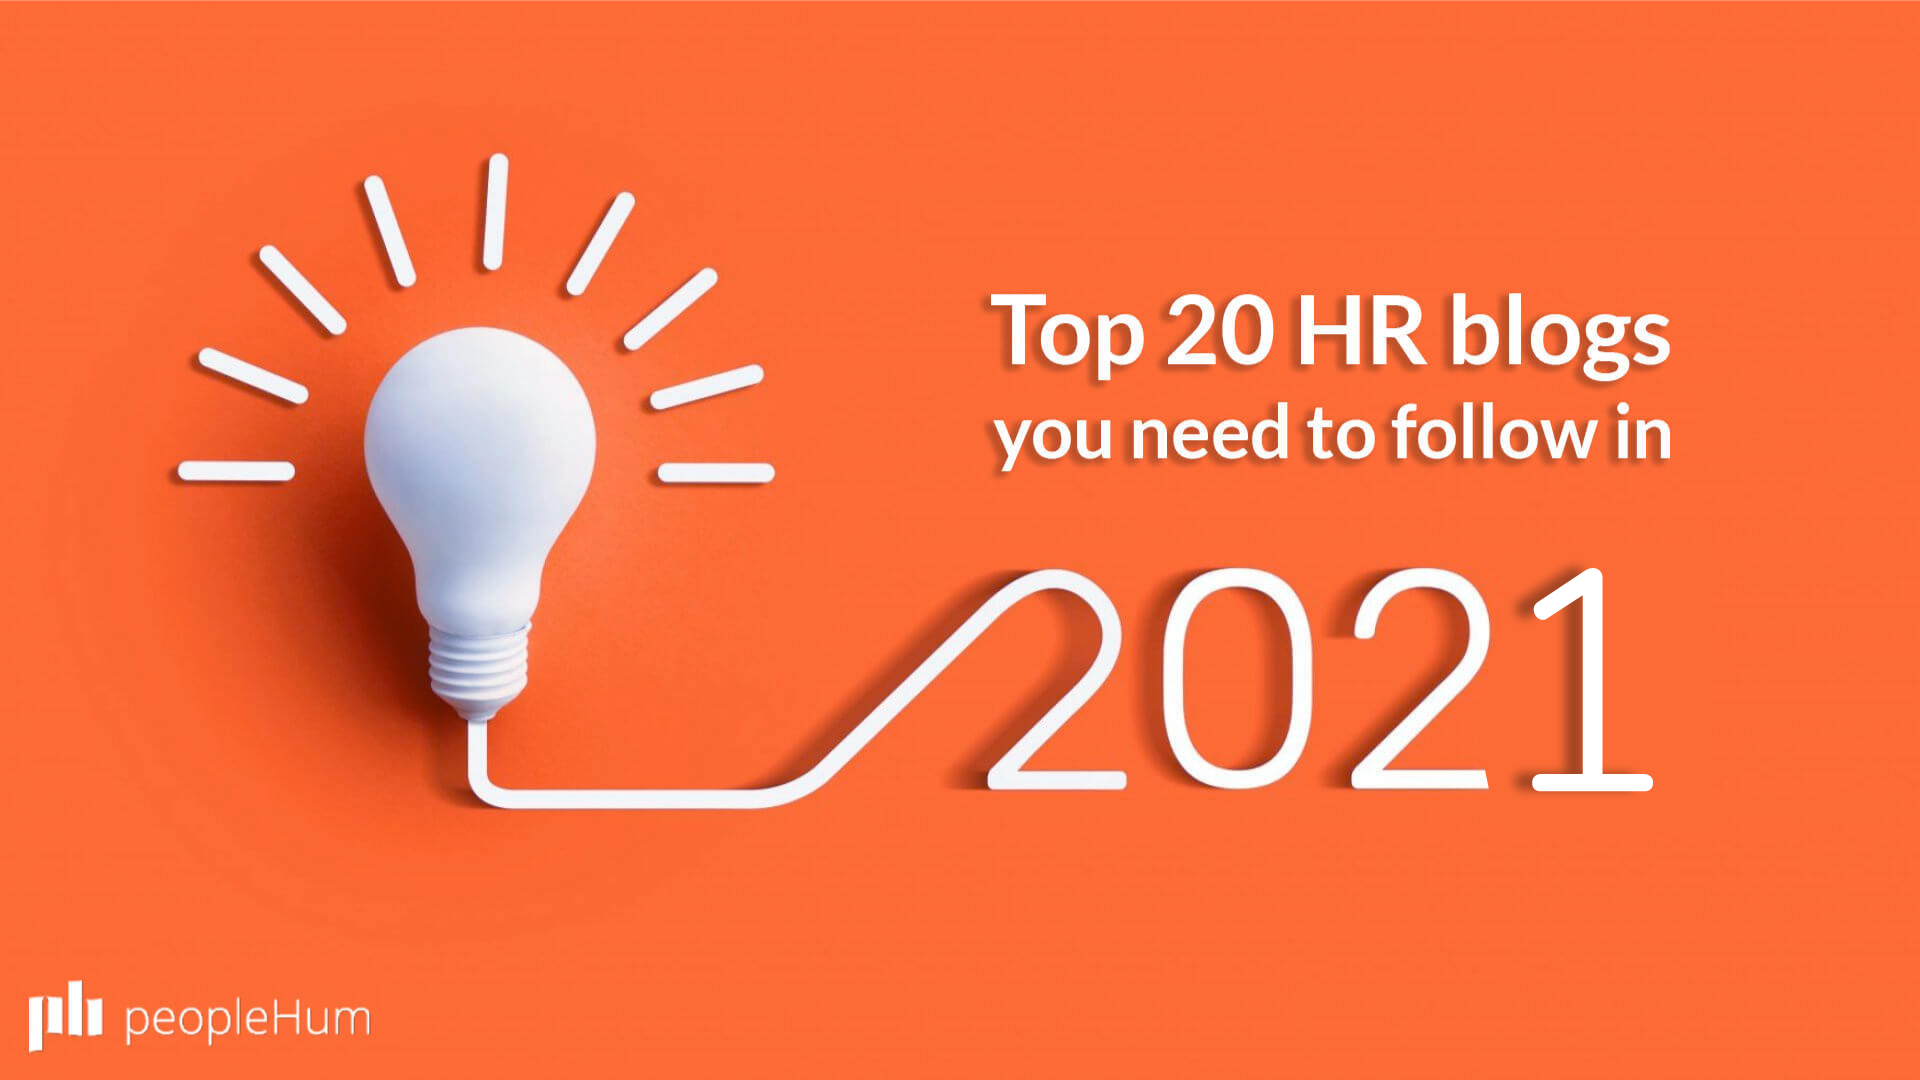 Top 20 HR blogs you need to follow in 2021